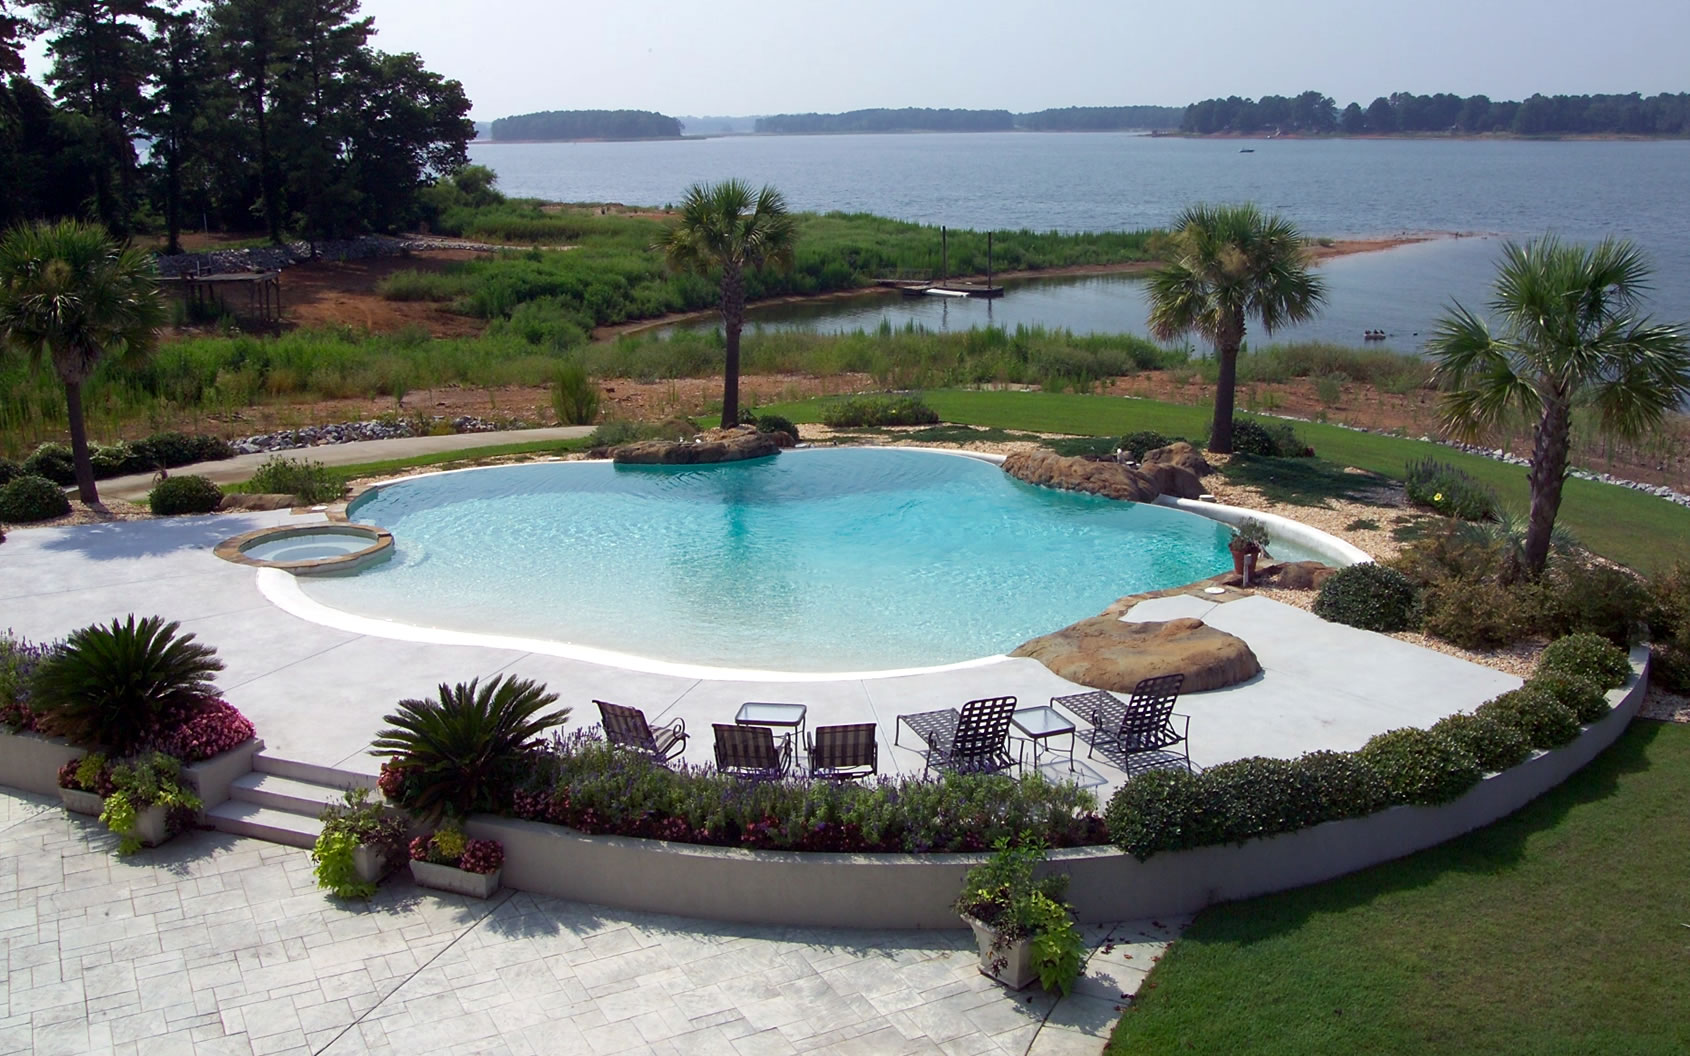 Residential Pool Designs custom built residential swimming pools pool contractor designer eugene and bend oregon South Carolina Pool Designer